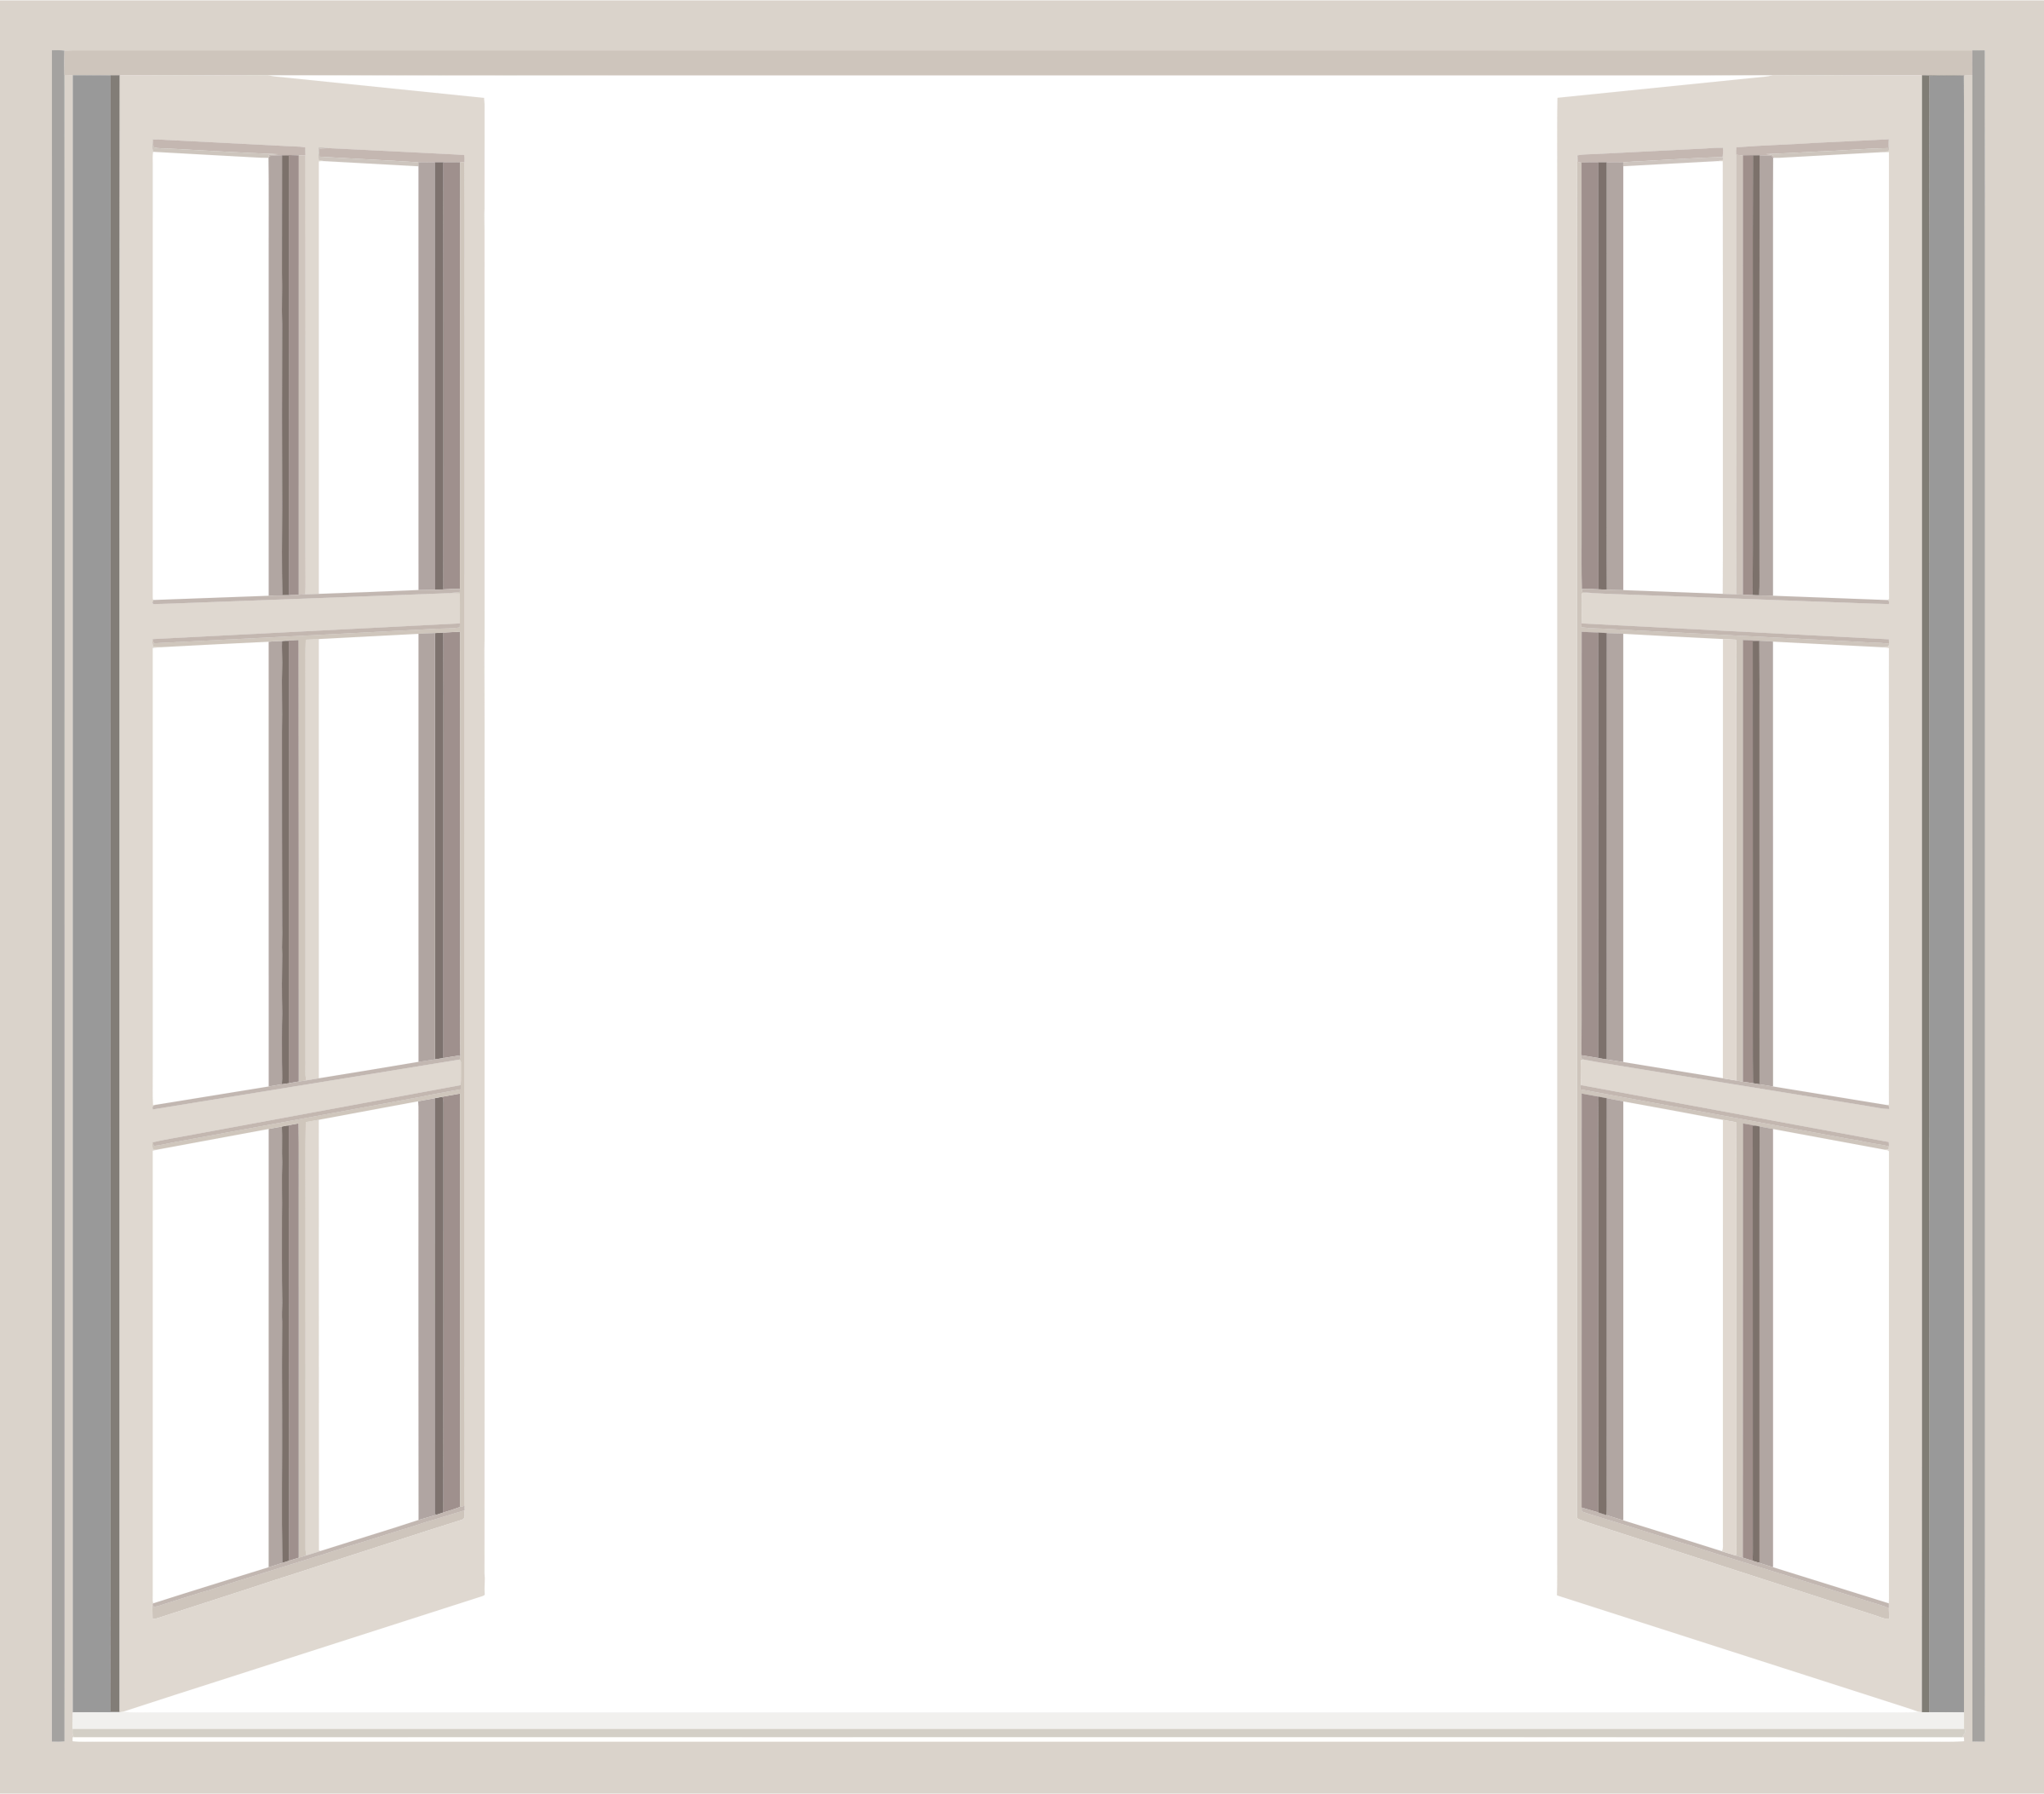 Home windows png